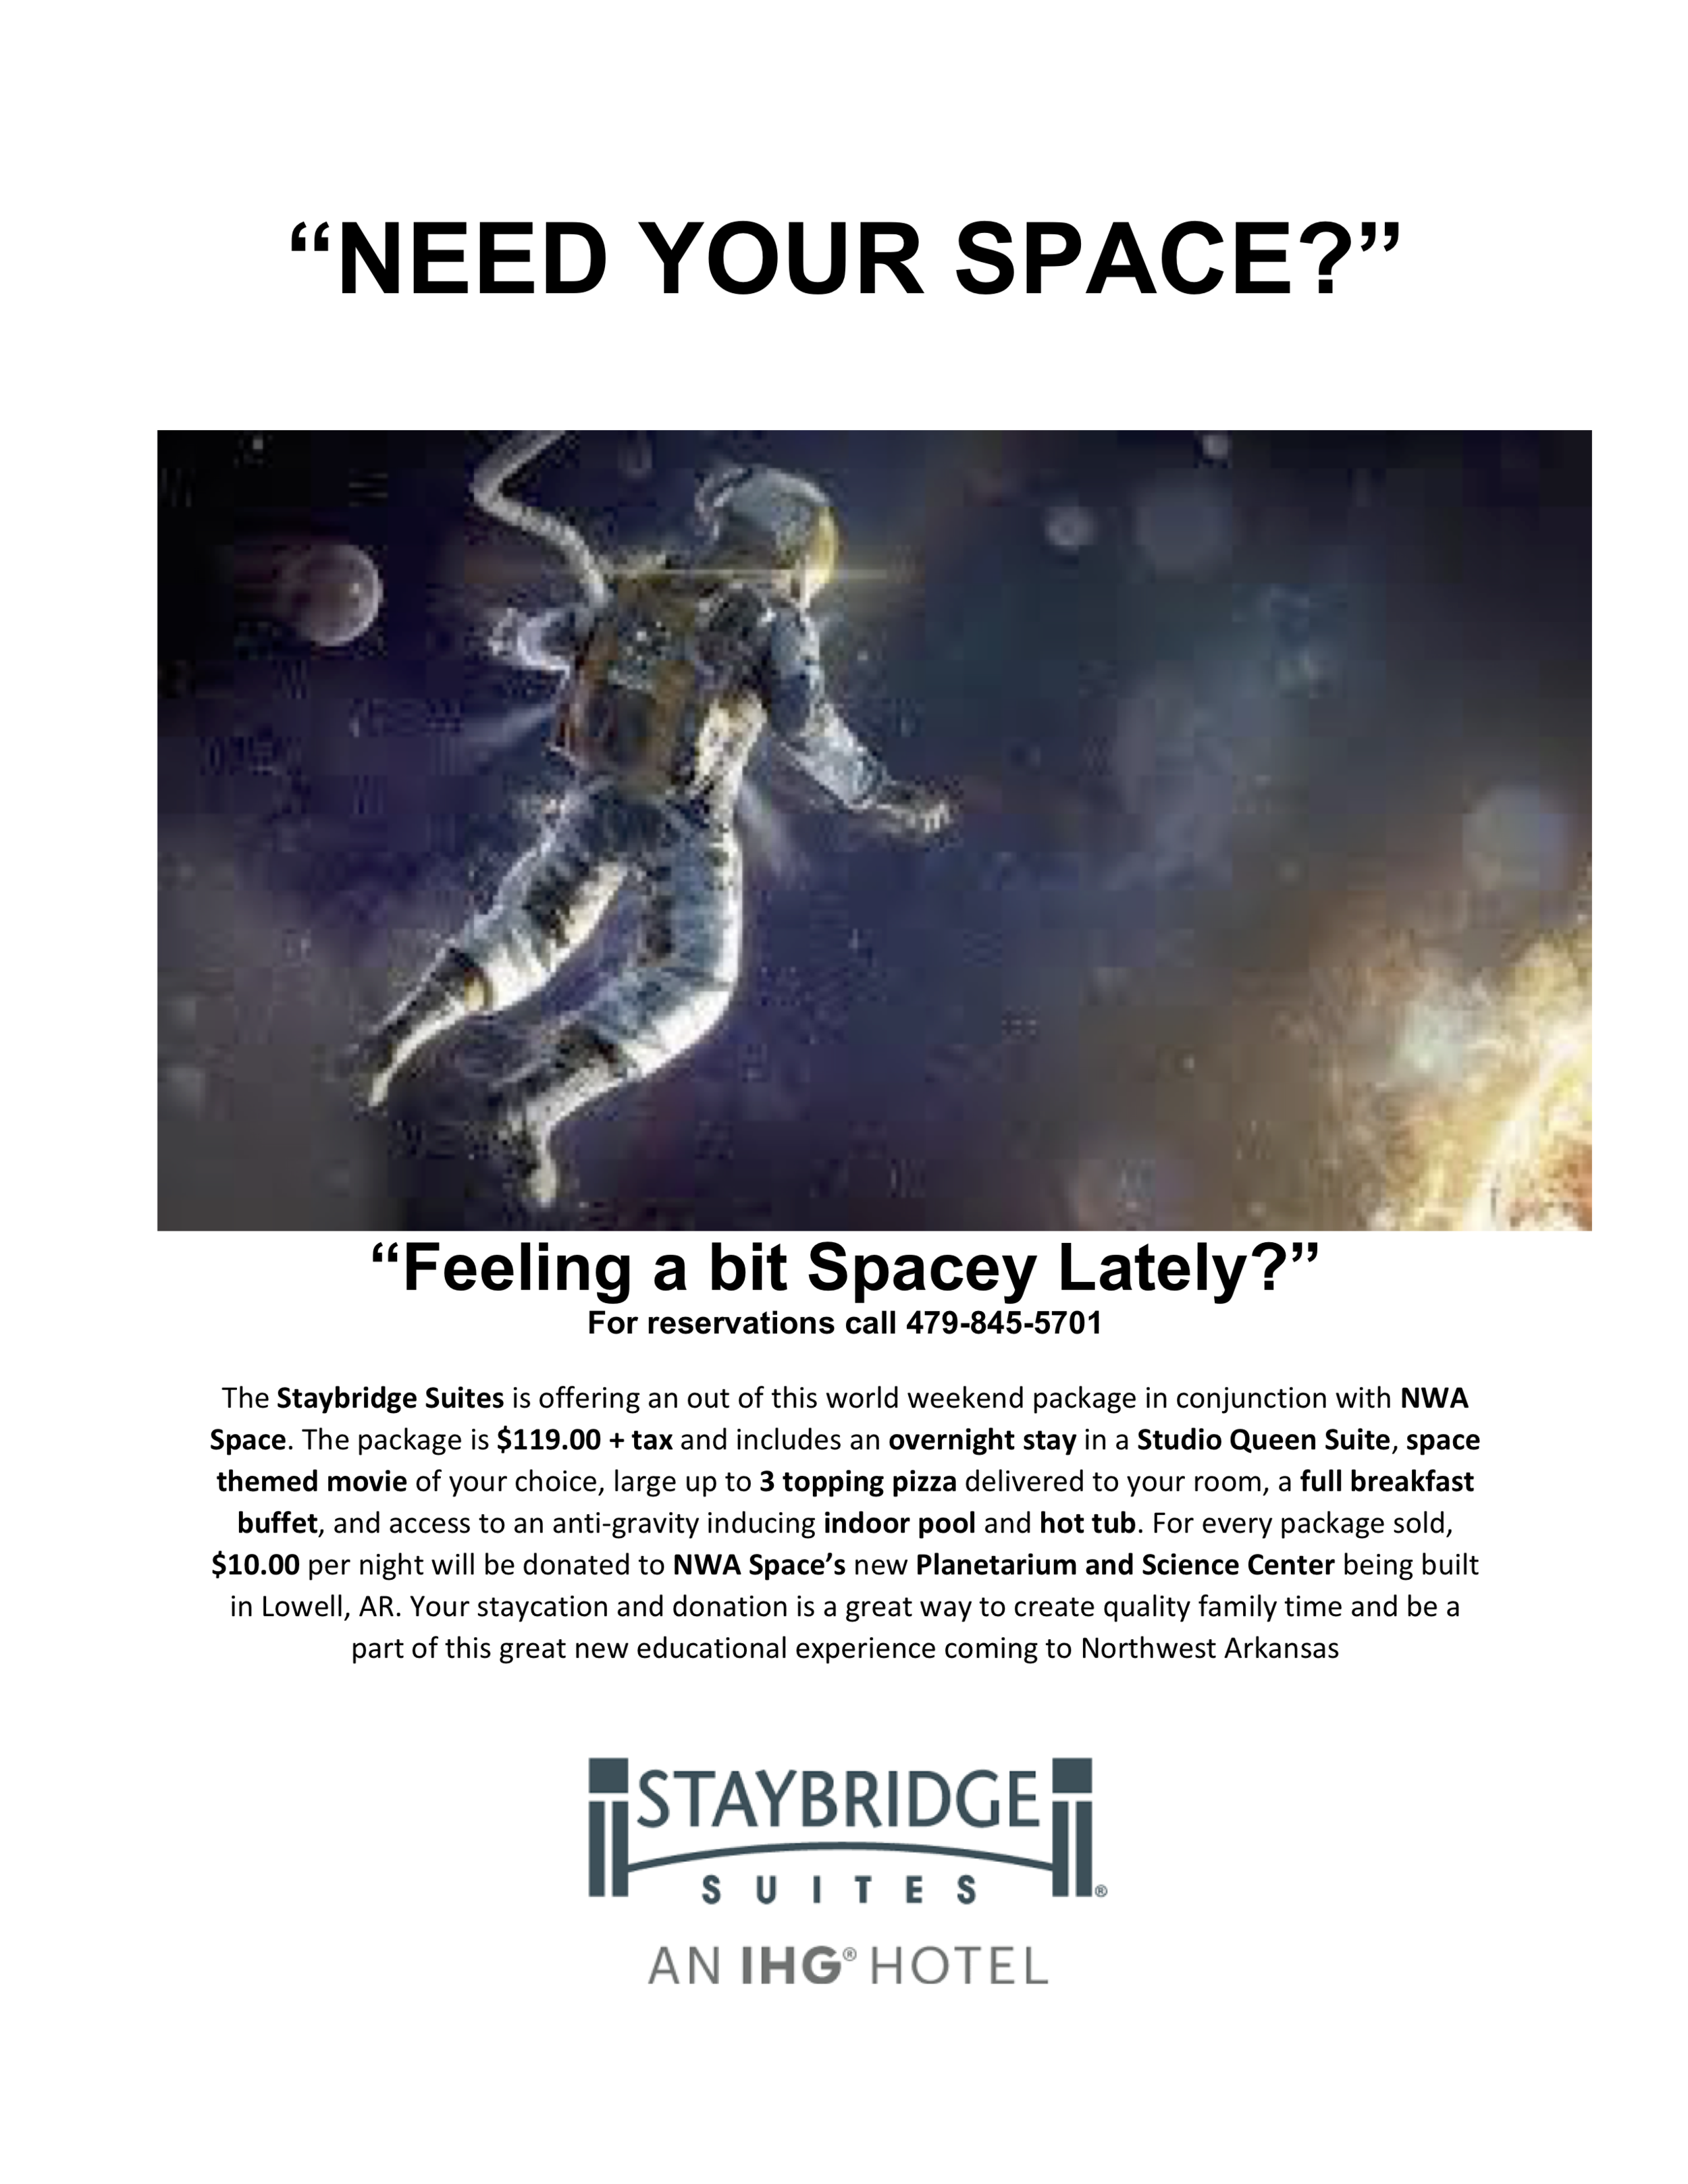 Staybridge-Suites_Need-Your-Space-Flyer.png